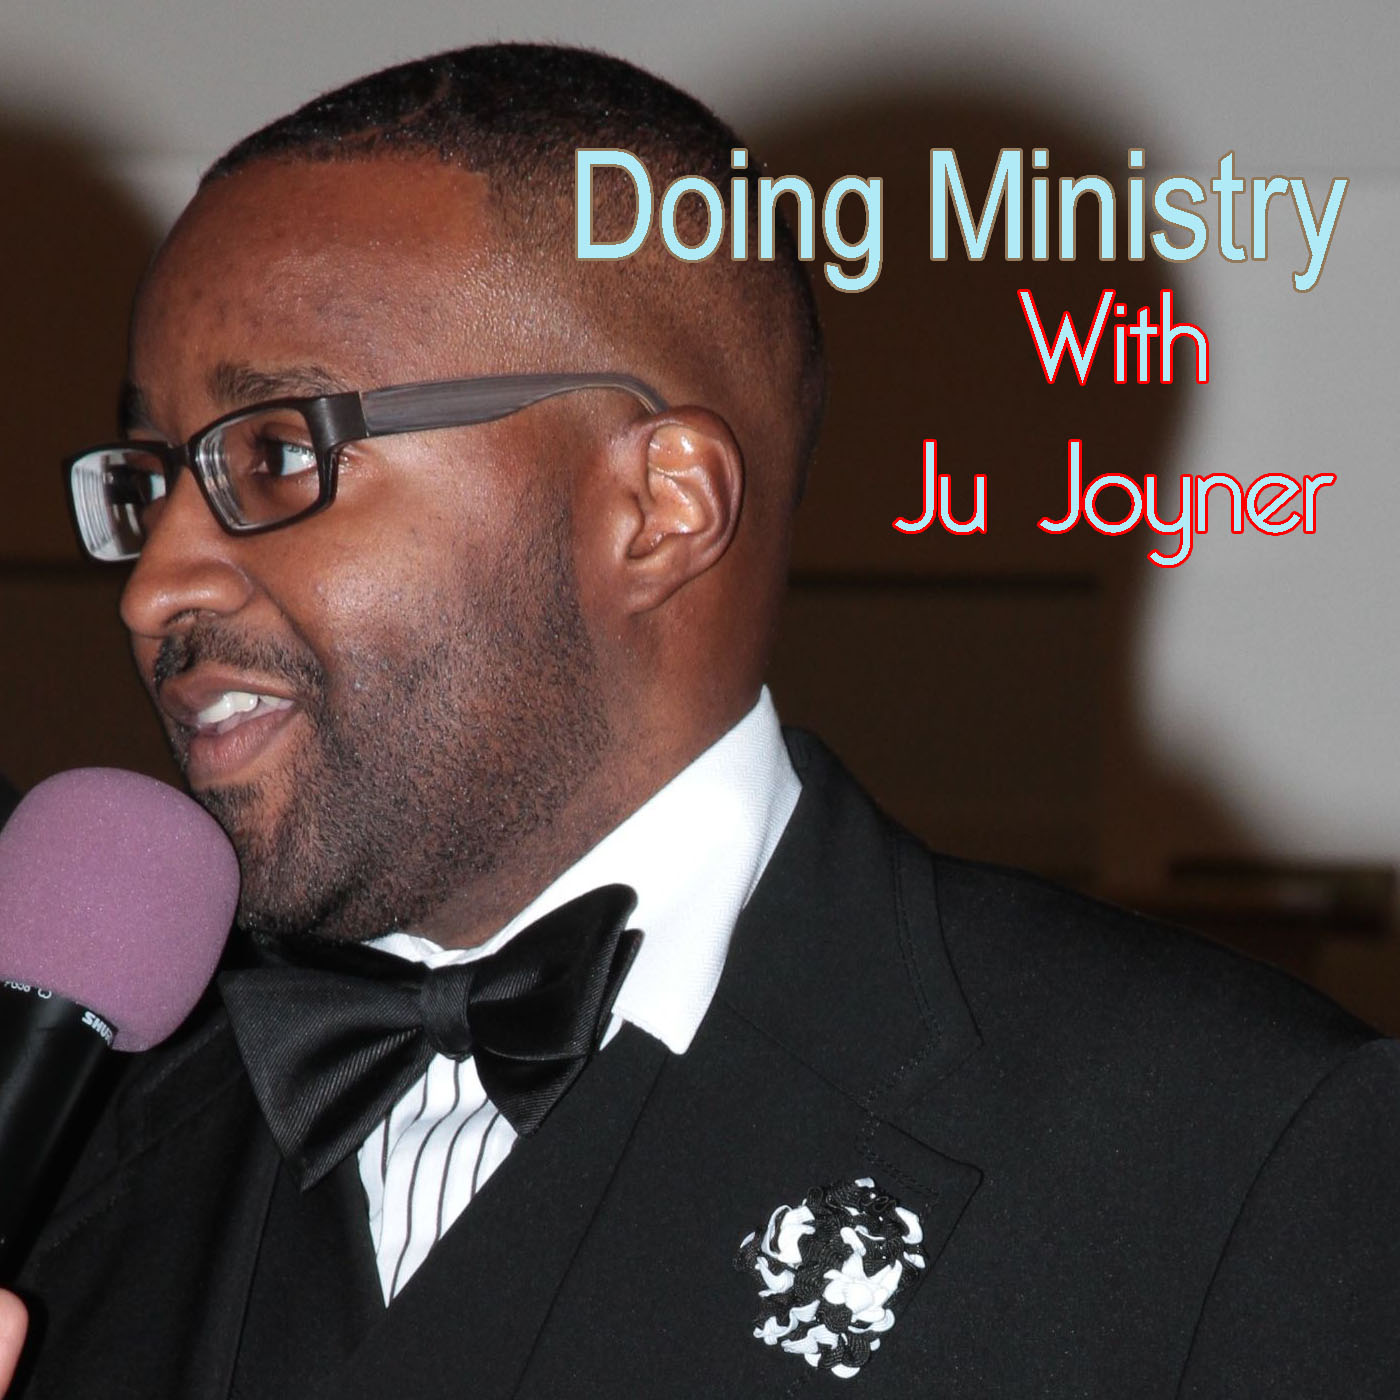 Doing Ministry with Ju Joyner